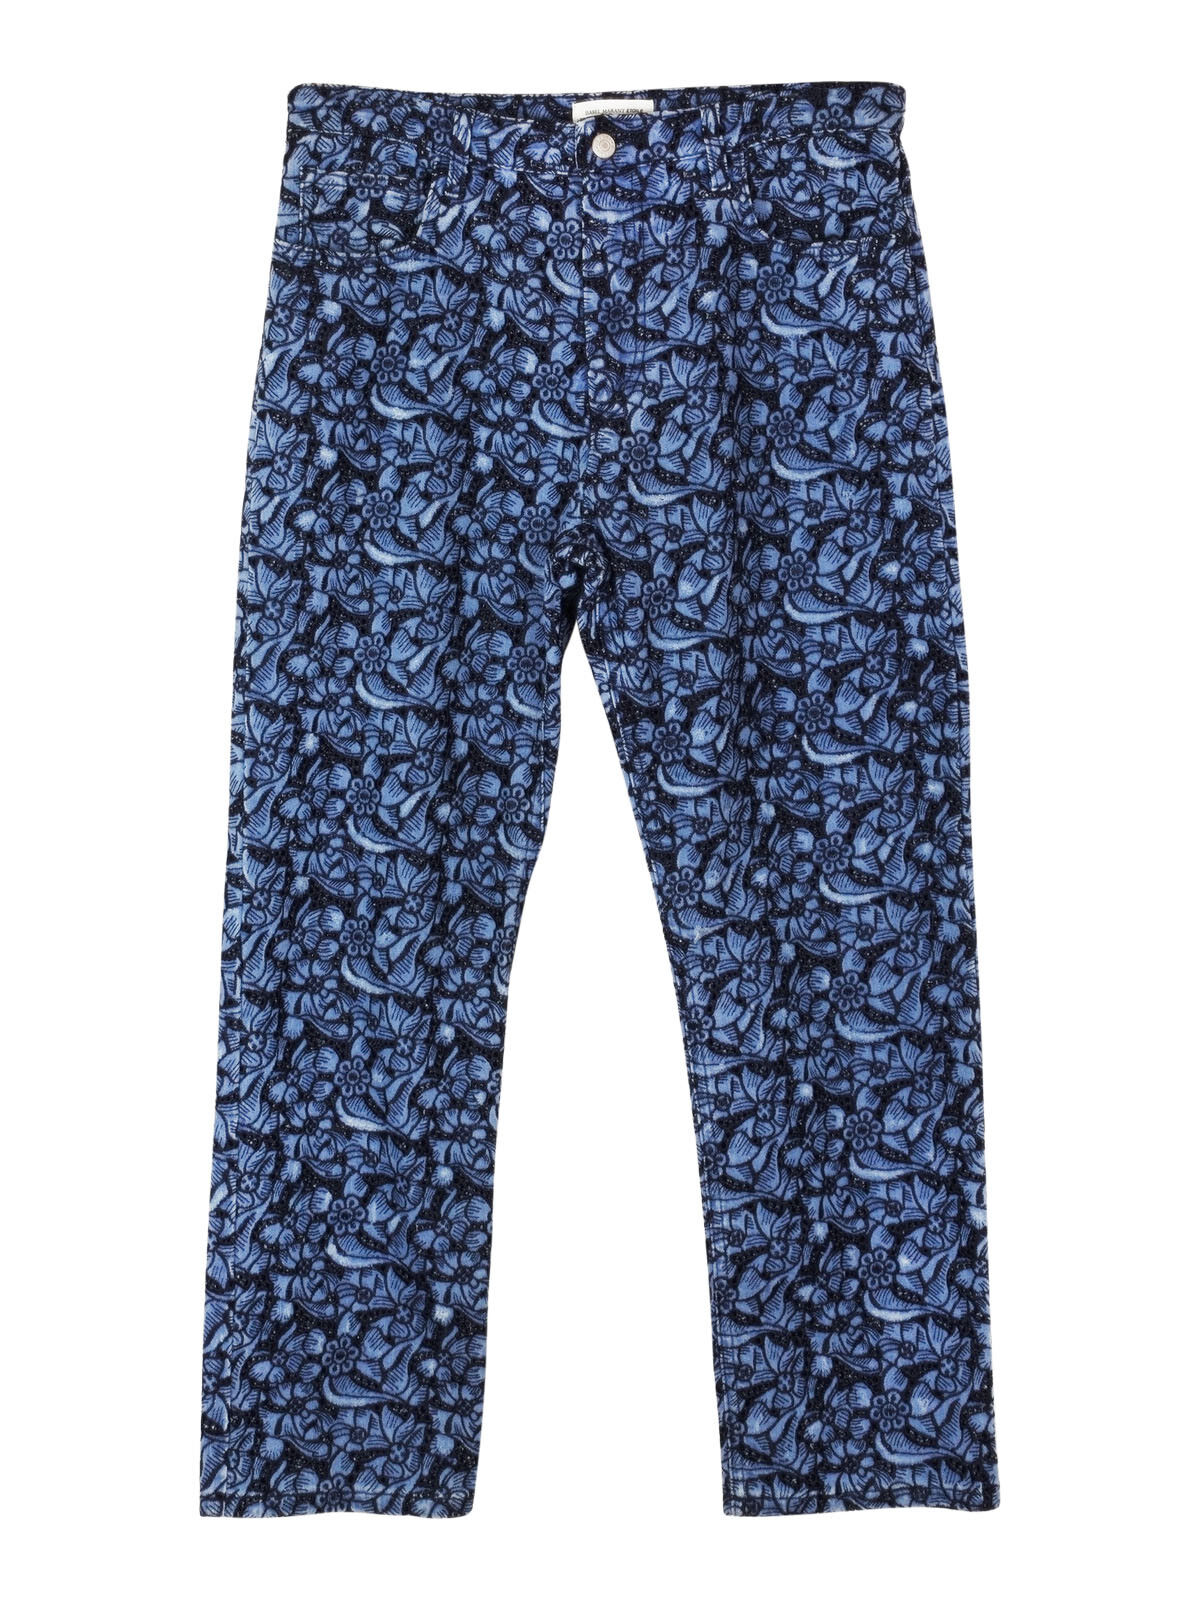 NEW Isabel Marant Etoile embroidered floral skinny fit bluee jeans